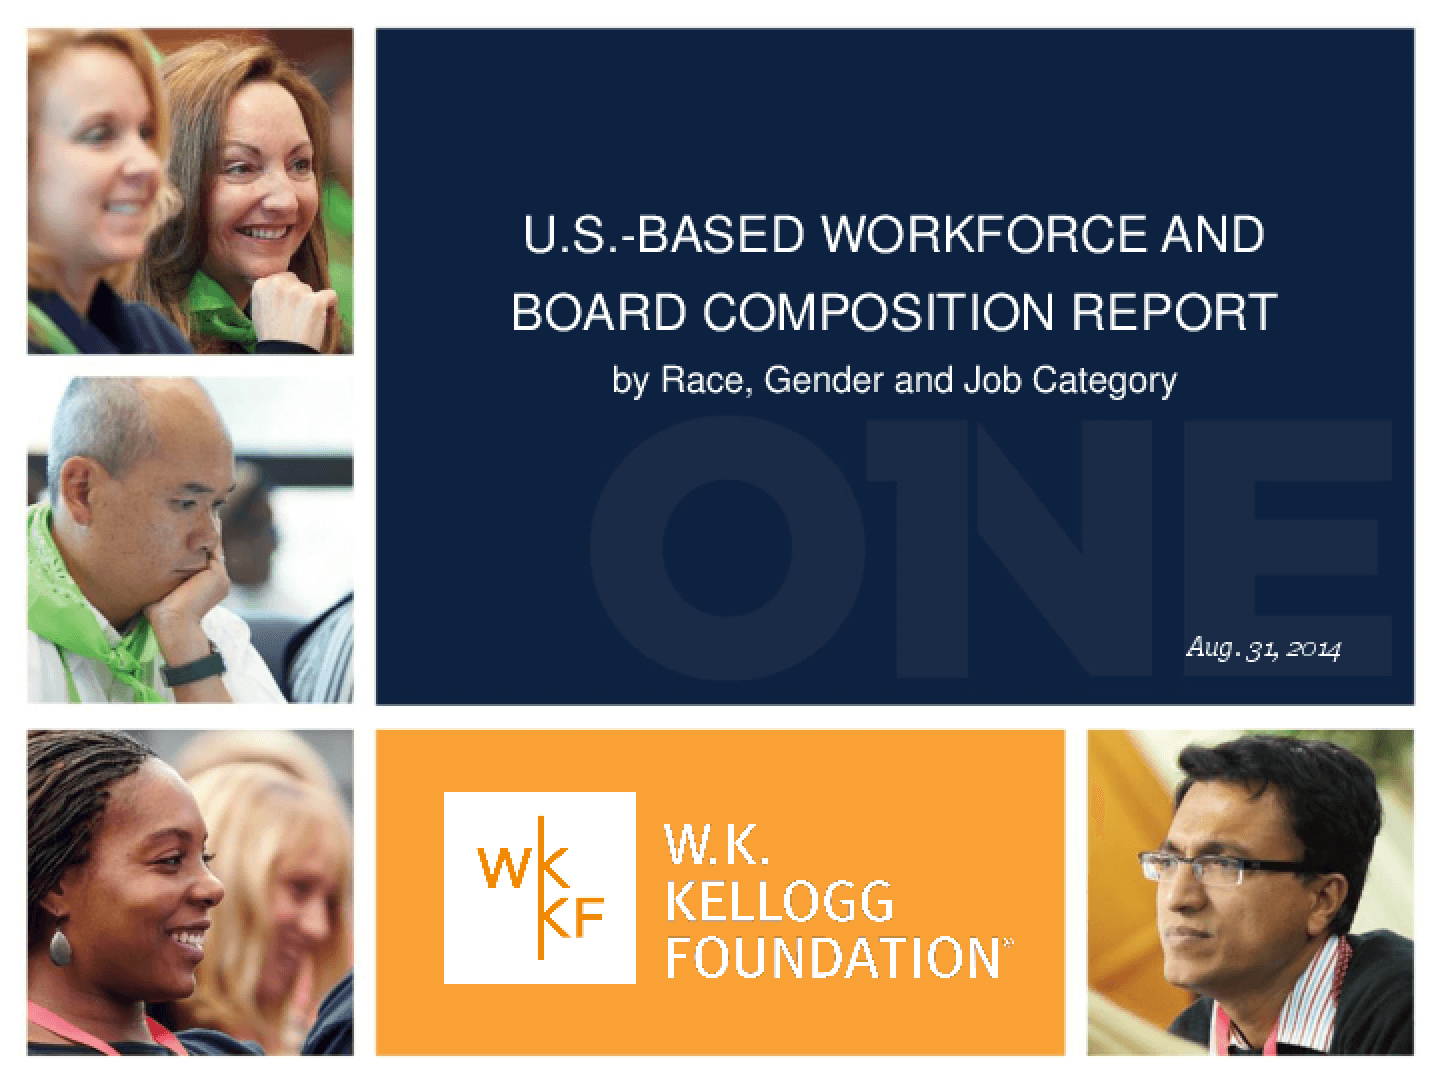 US Based Workforce and Board Composition Report by Race/Ethinicity, Gender and Job Category 2014